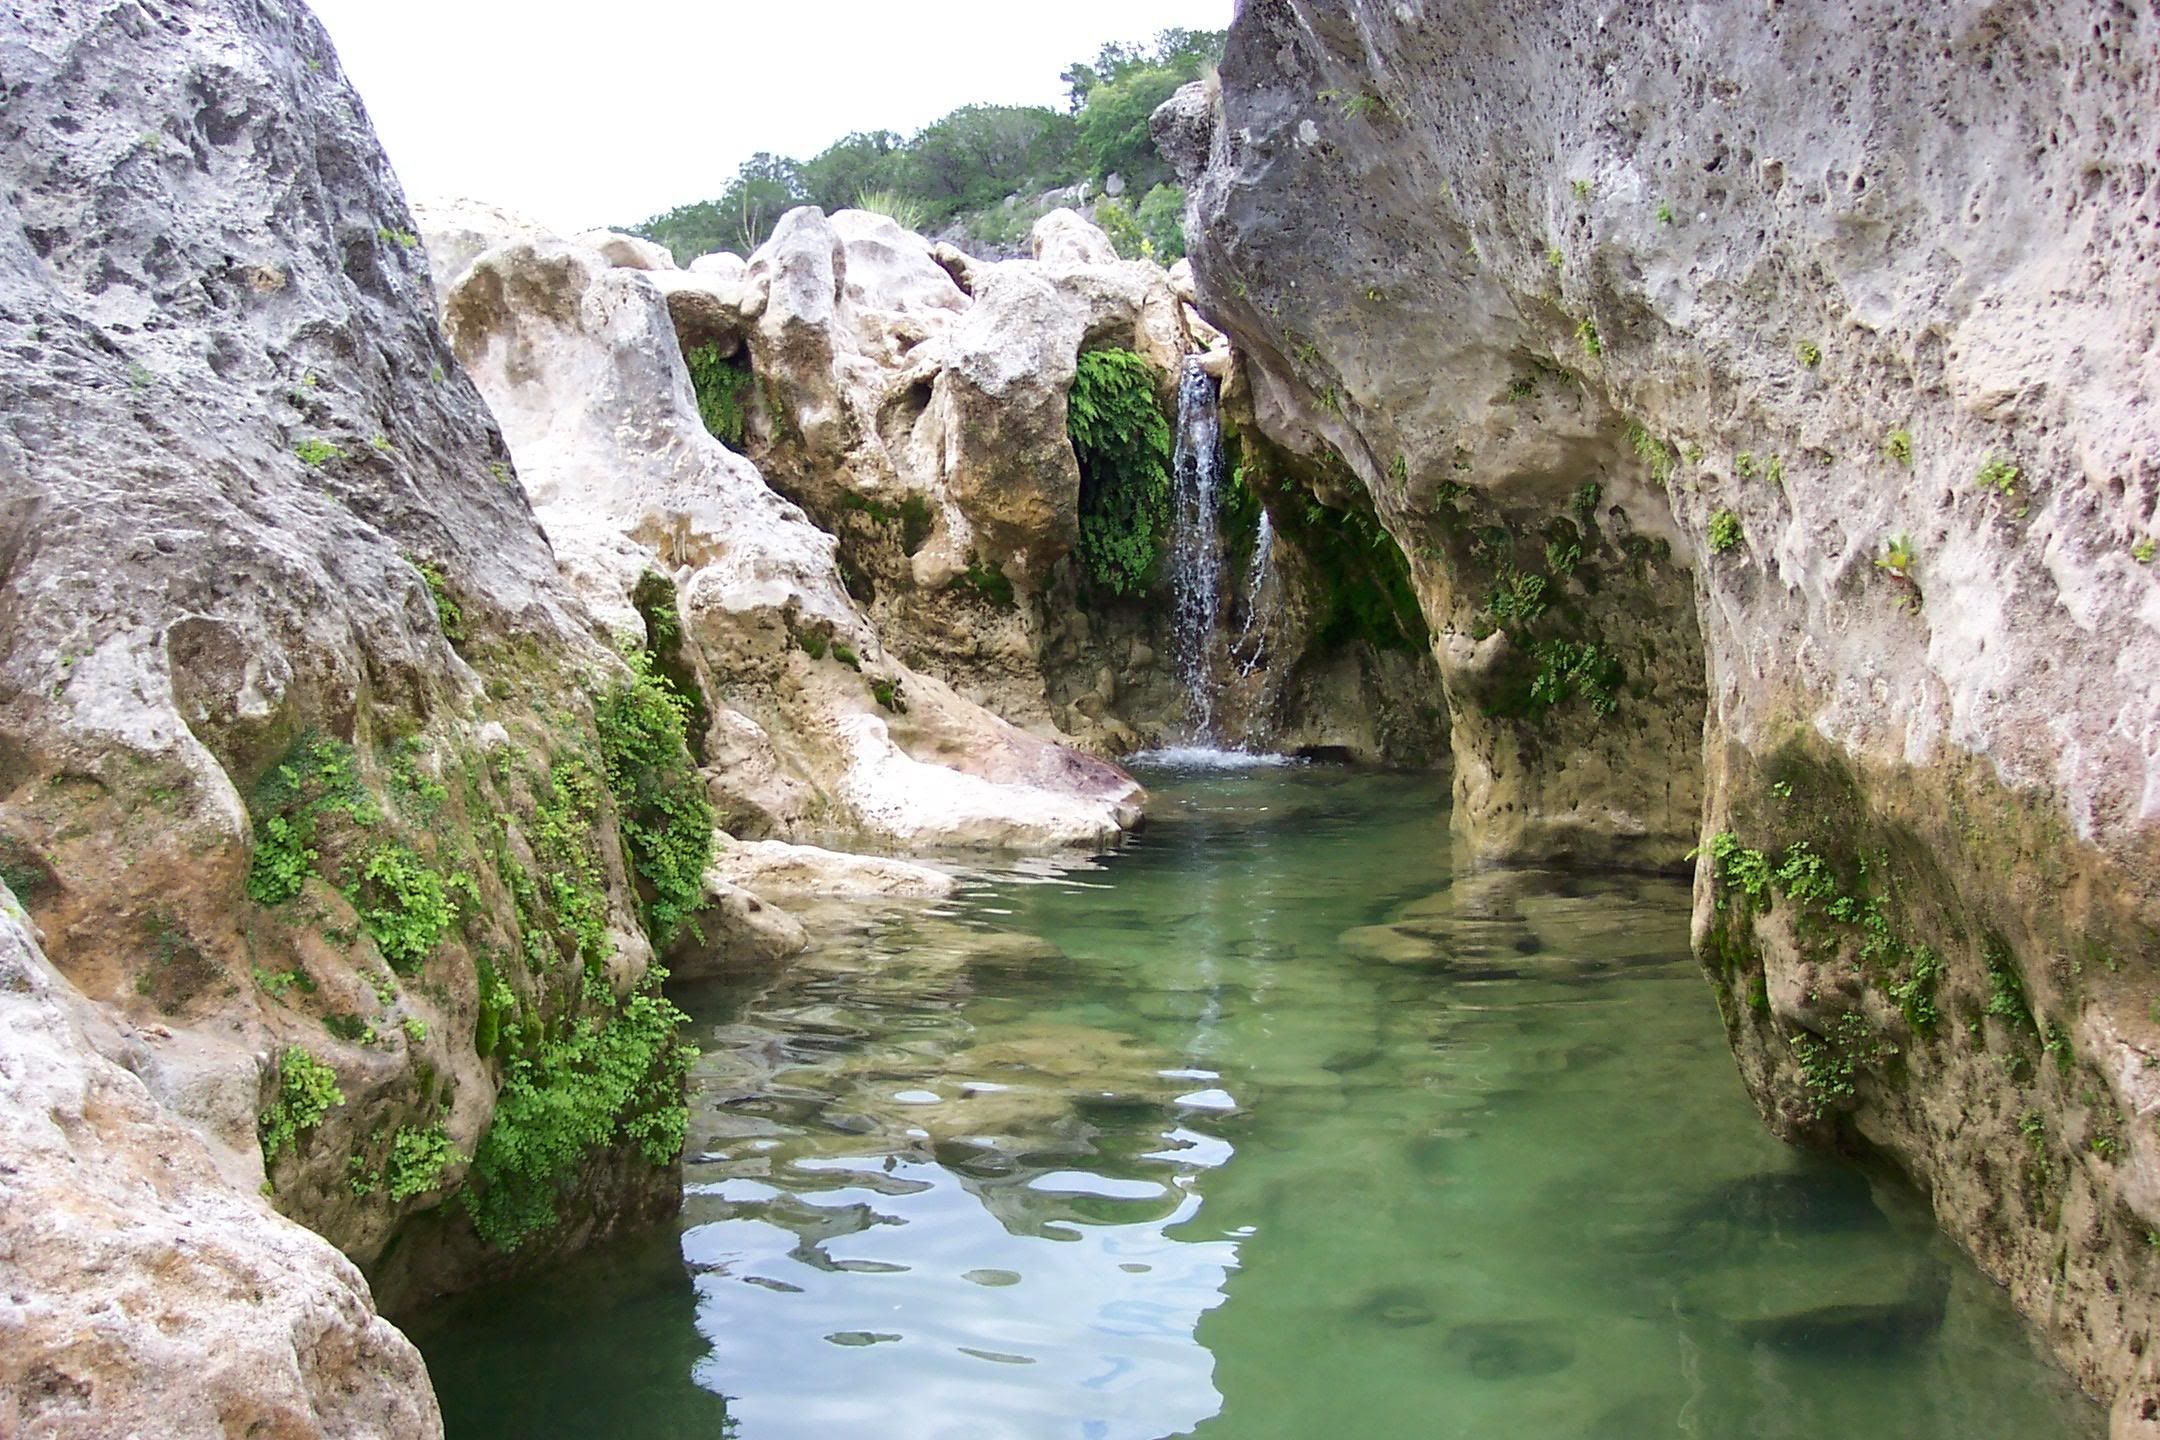 Blanco state park (With images) | State parks, Summer road ...